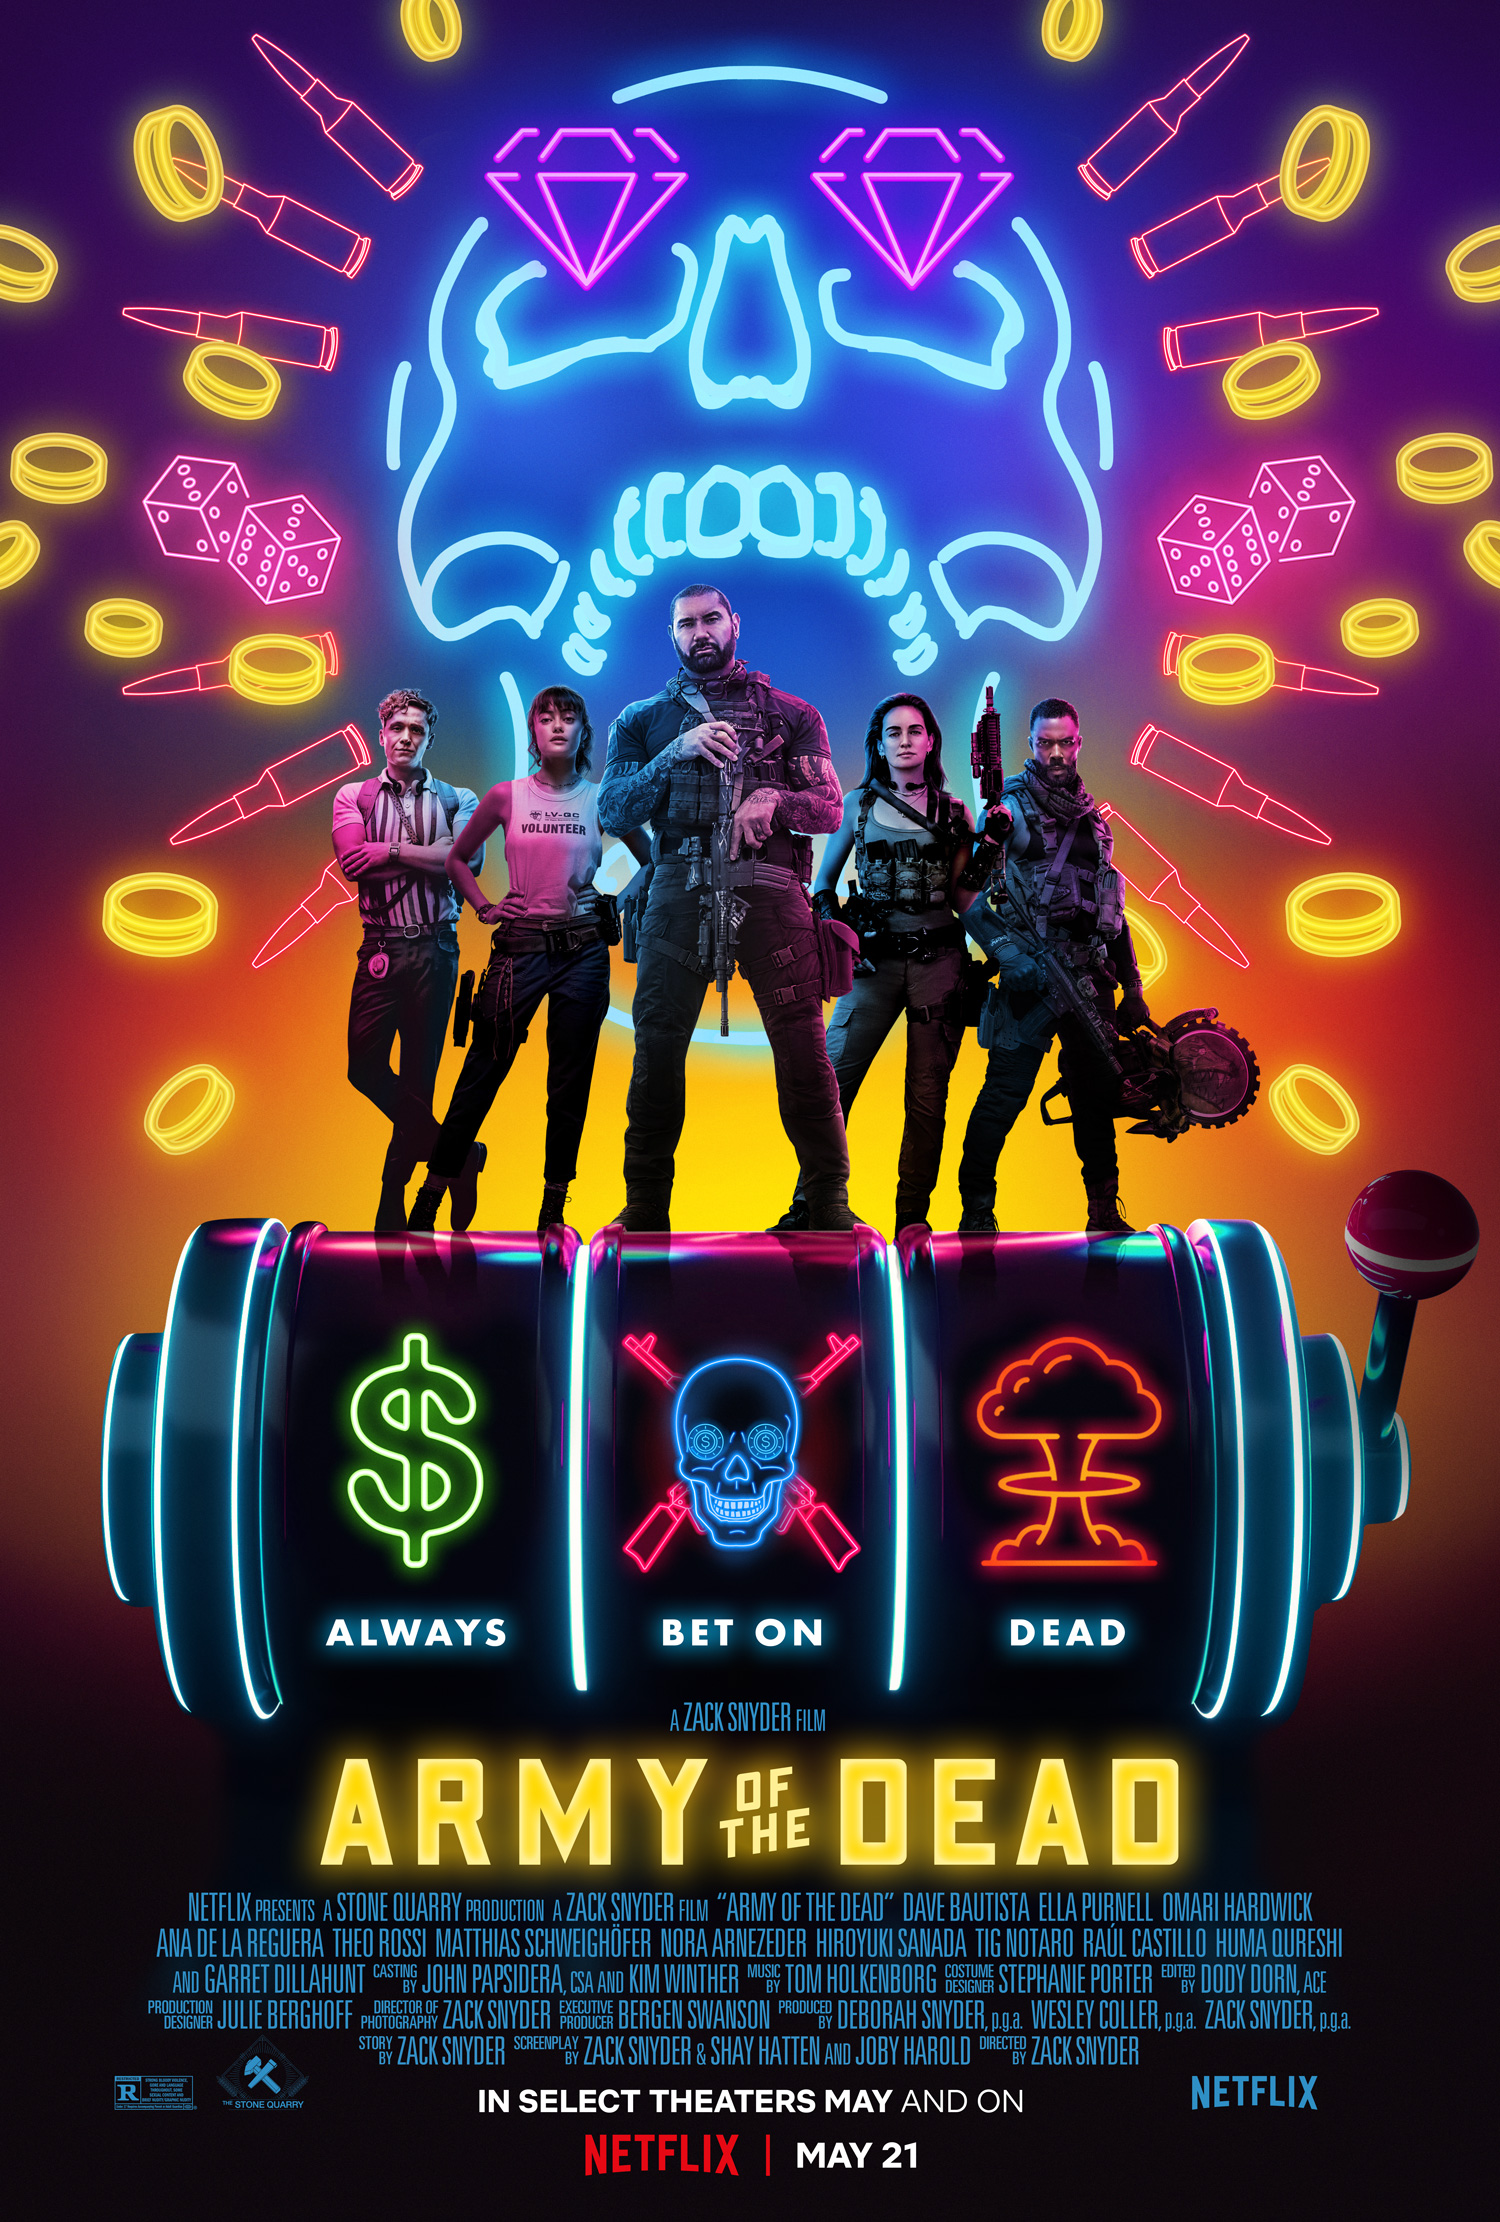 Army of the Dead – Zack Snyder 2021 Hindi Dubbed Official Trailer Netflix Movie 1080p HDRip Download